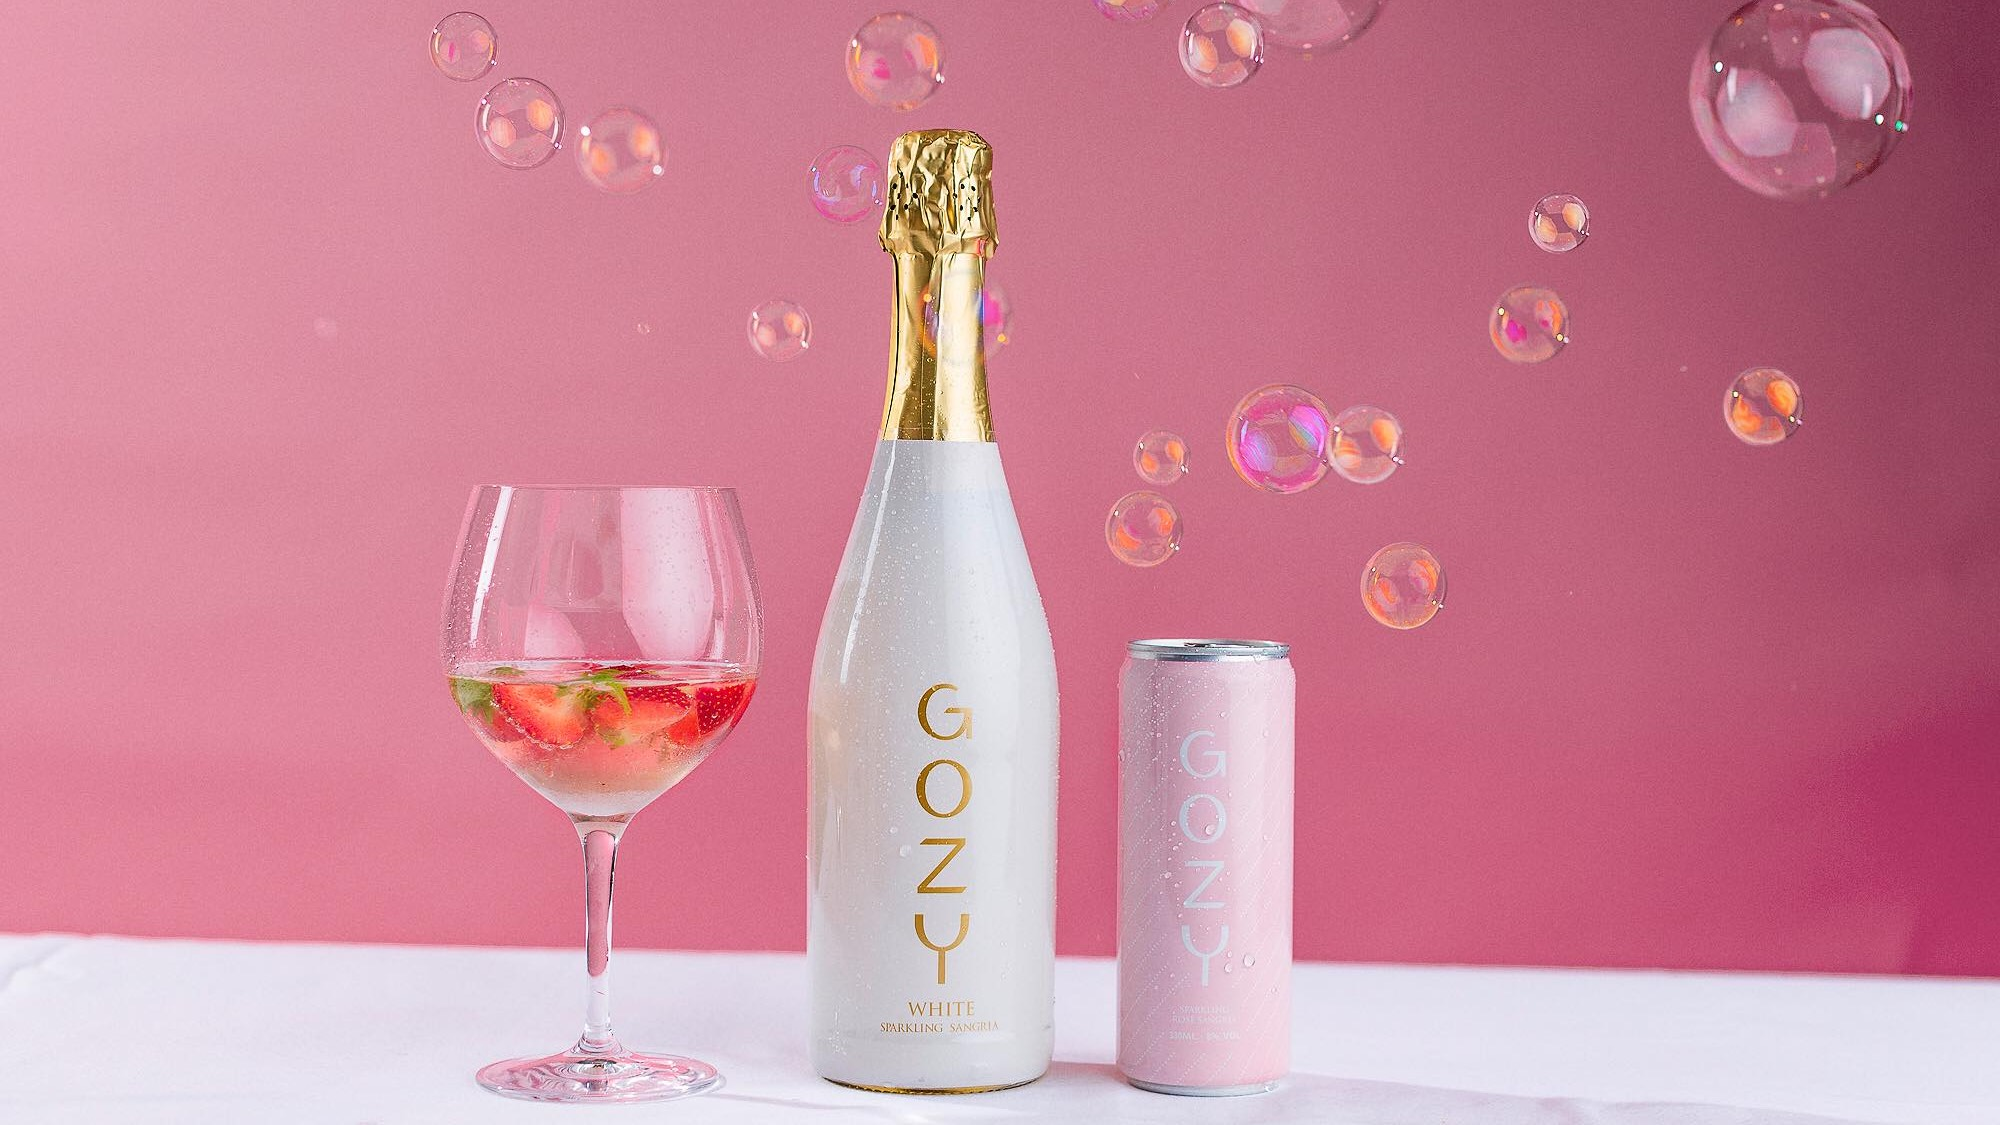 A bottle, glass and bubbles